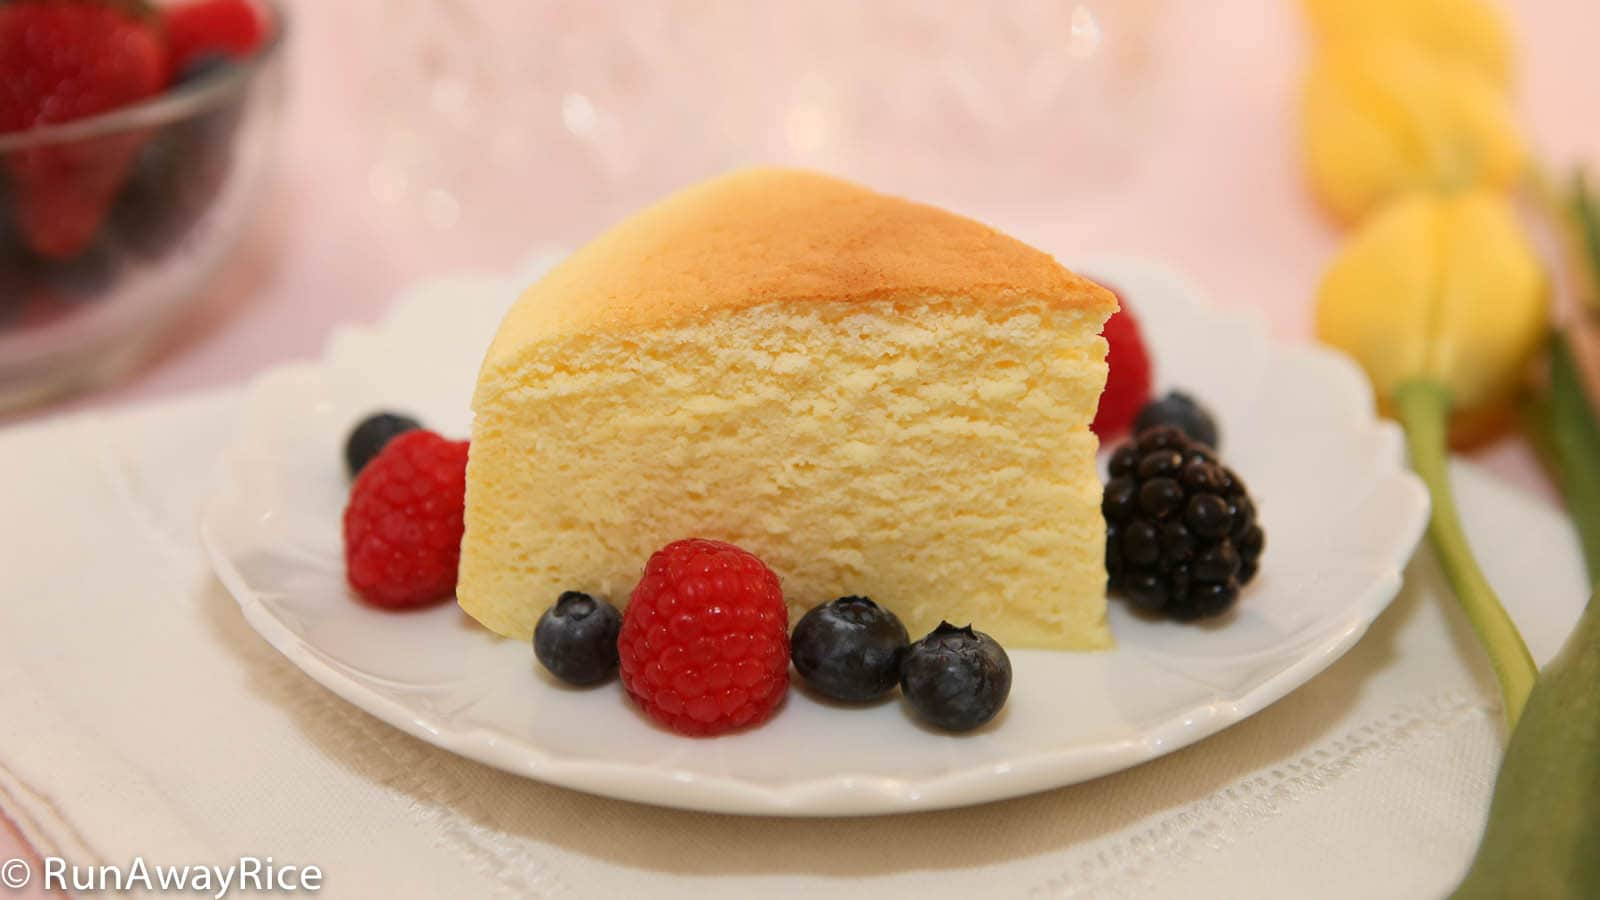 Cotton Cheesecake / Japanese Cheesecake - Unique cake is a cross between a sponge cake and cheesecake and absolutely heavenly!   recipe from runawayrice.com